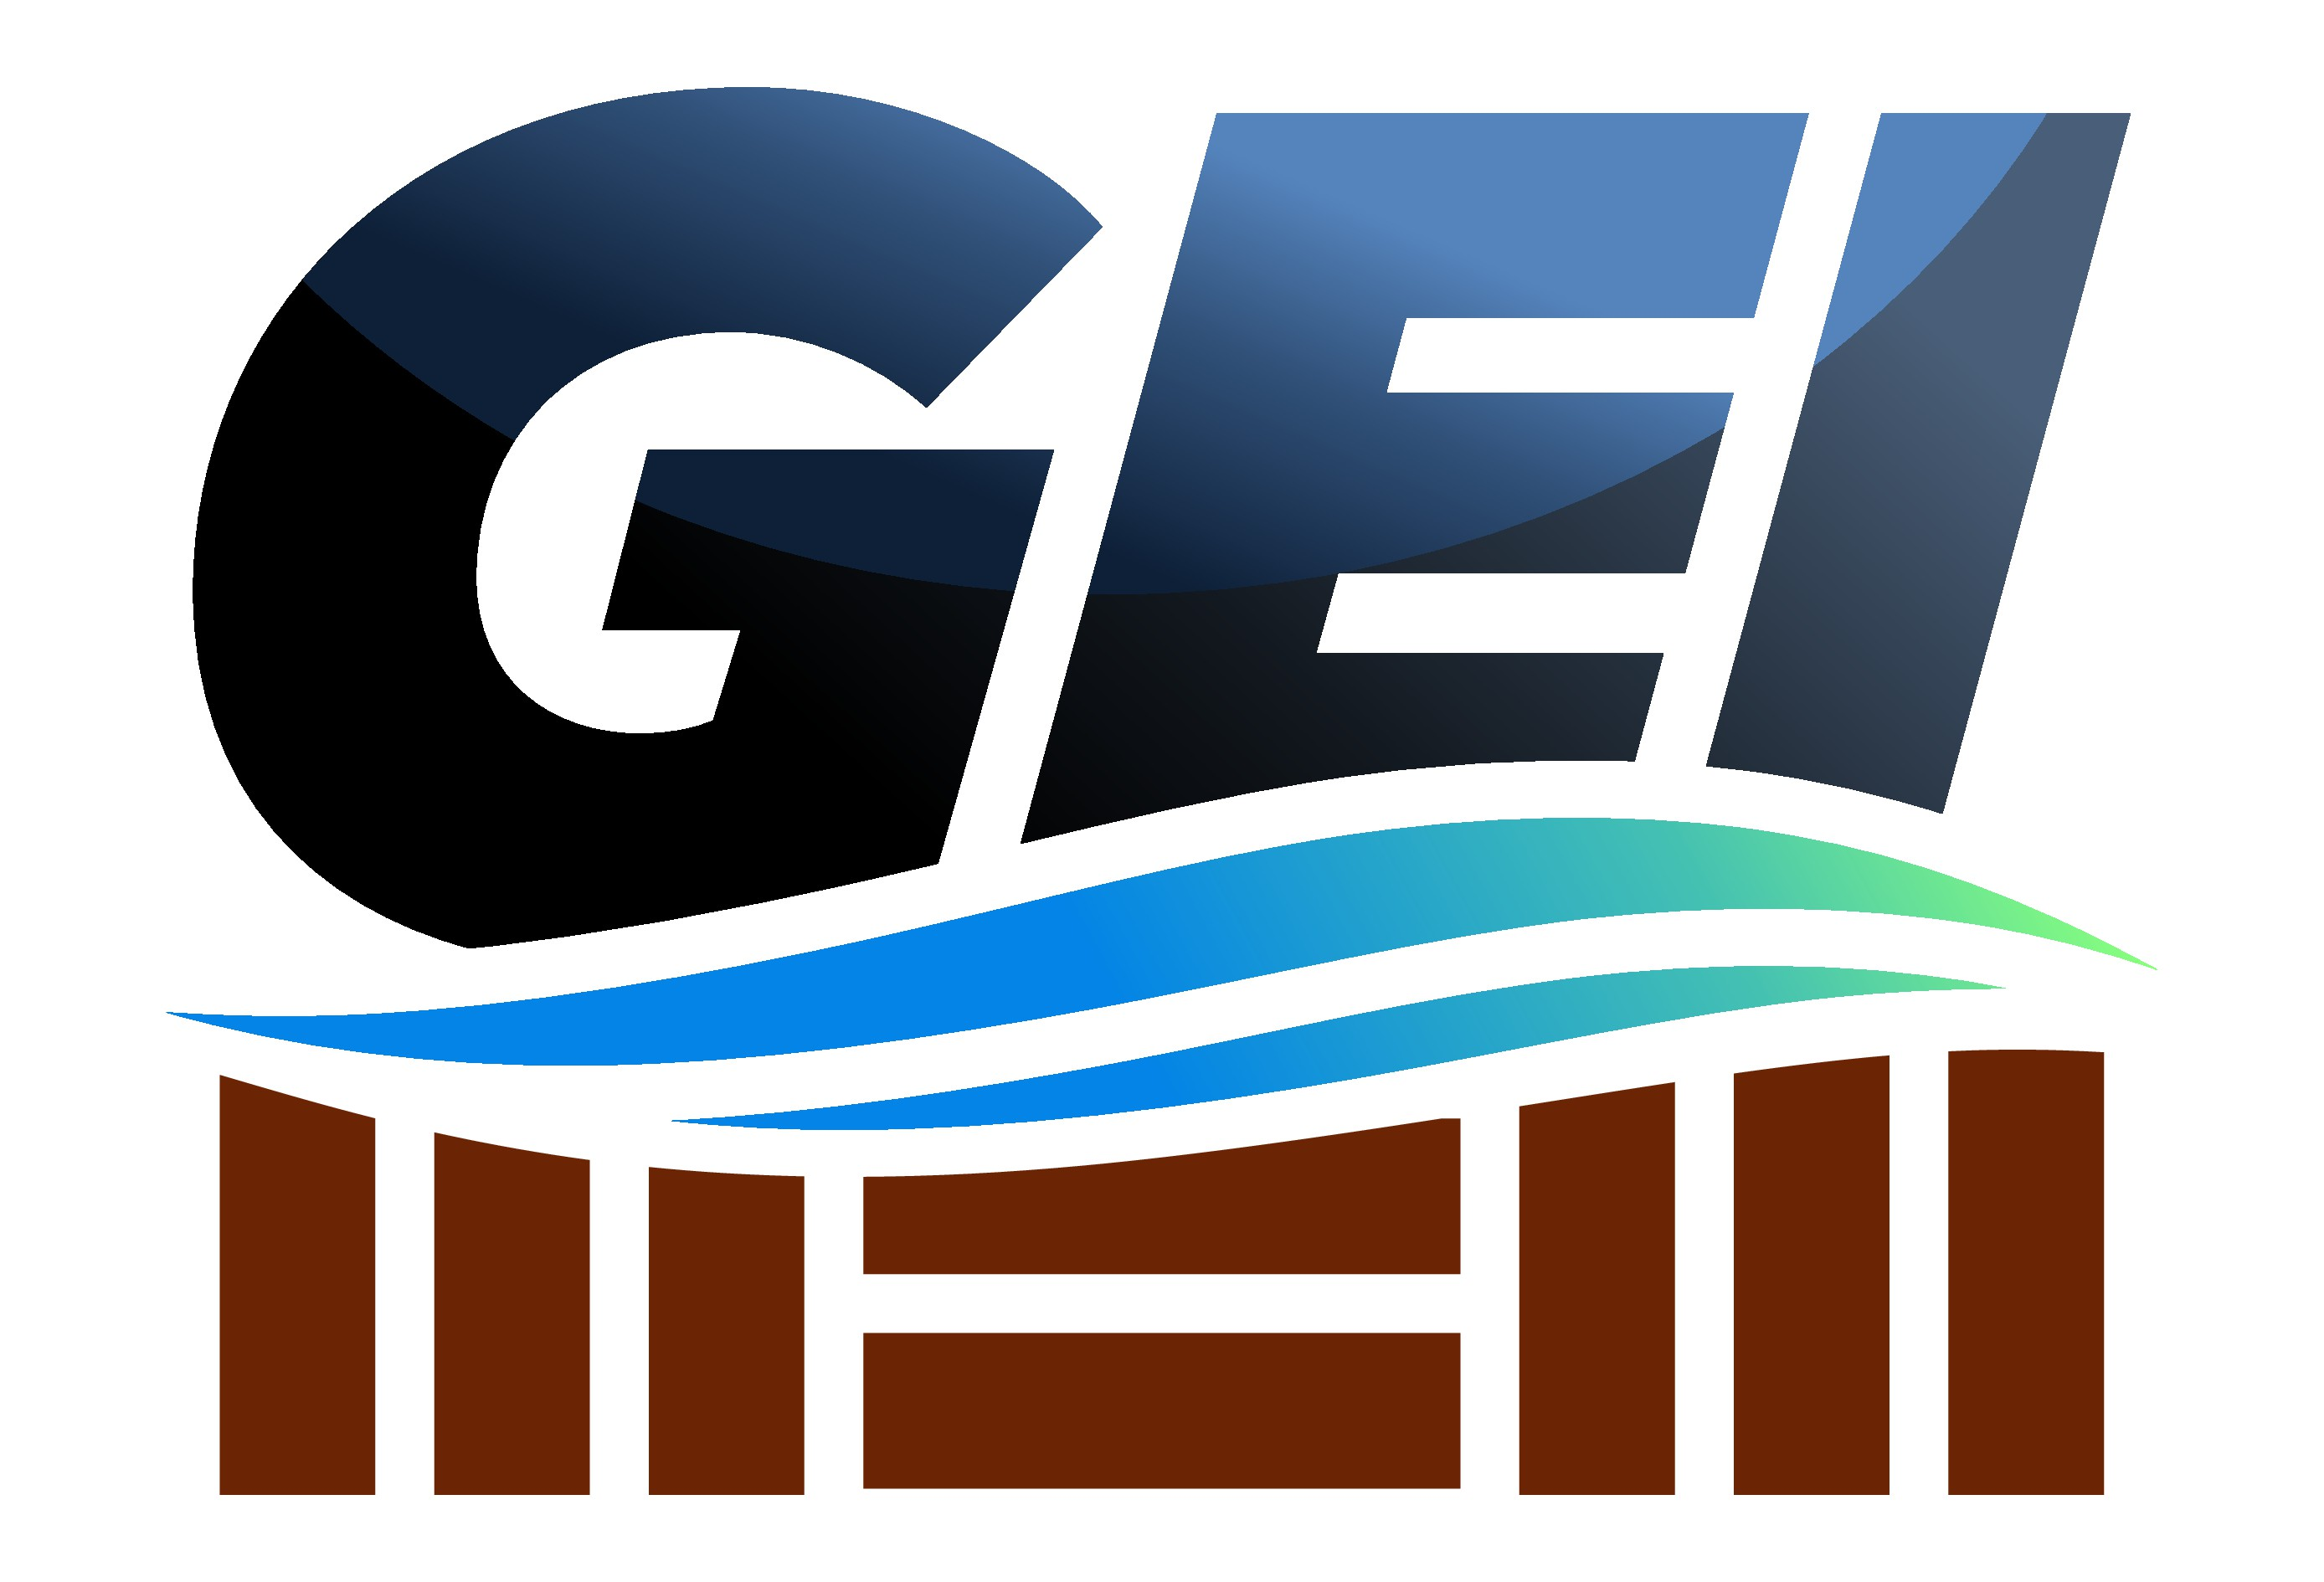 GEI logo for engineering services